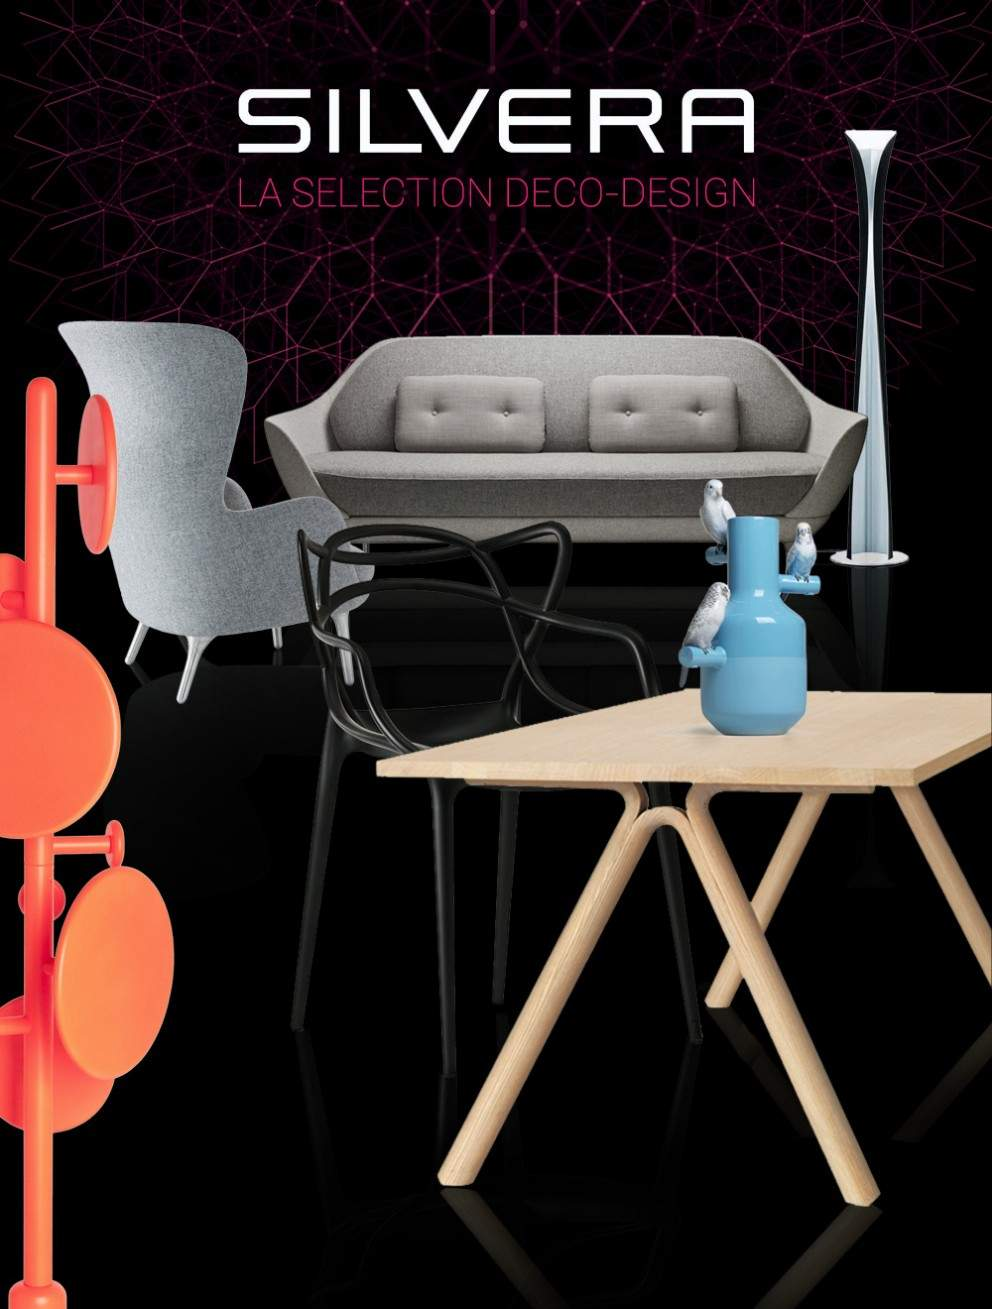 silvera selection deco-design